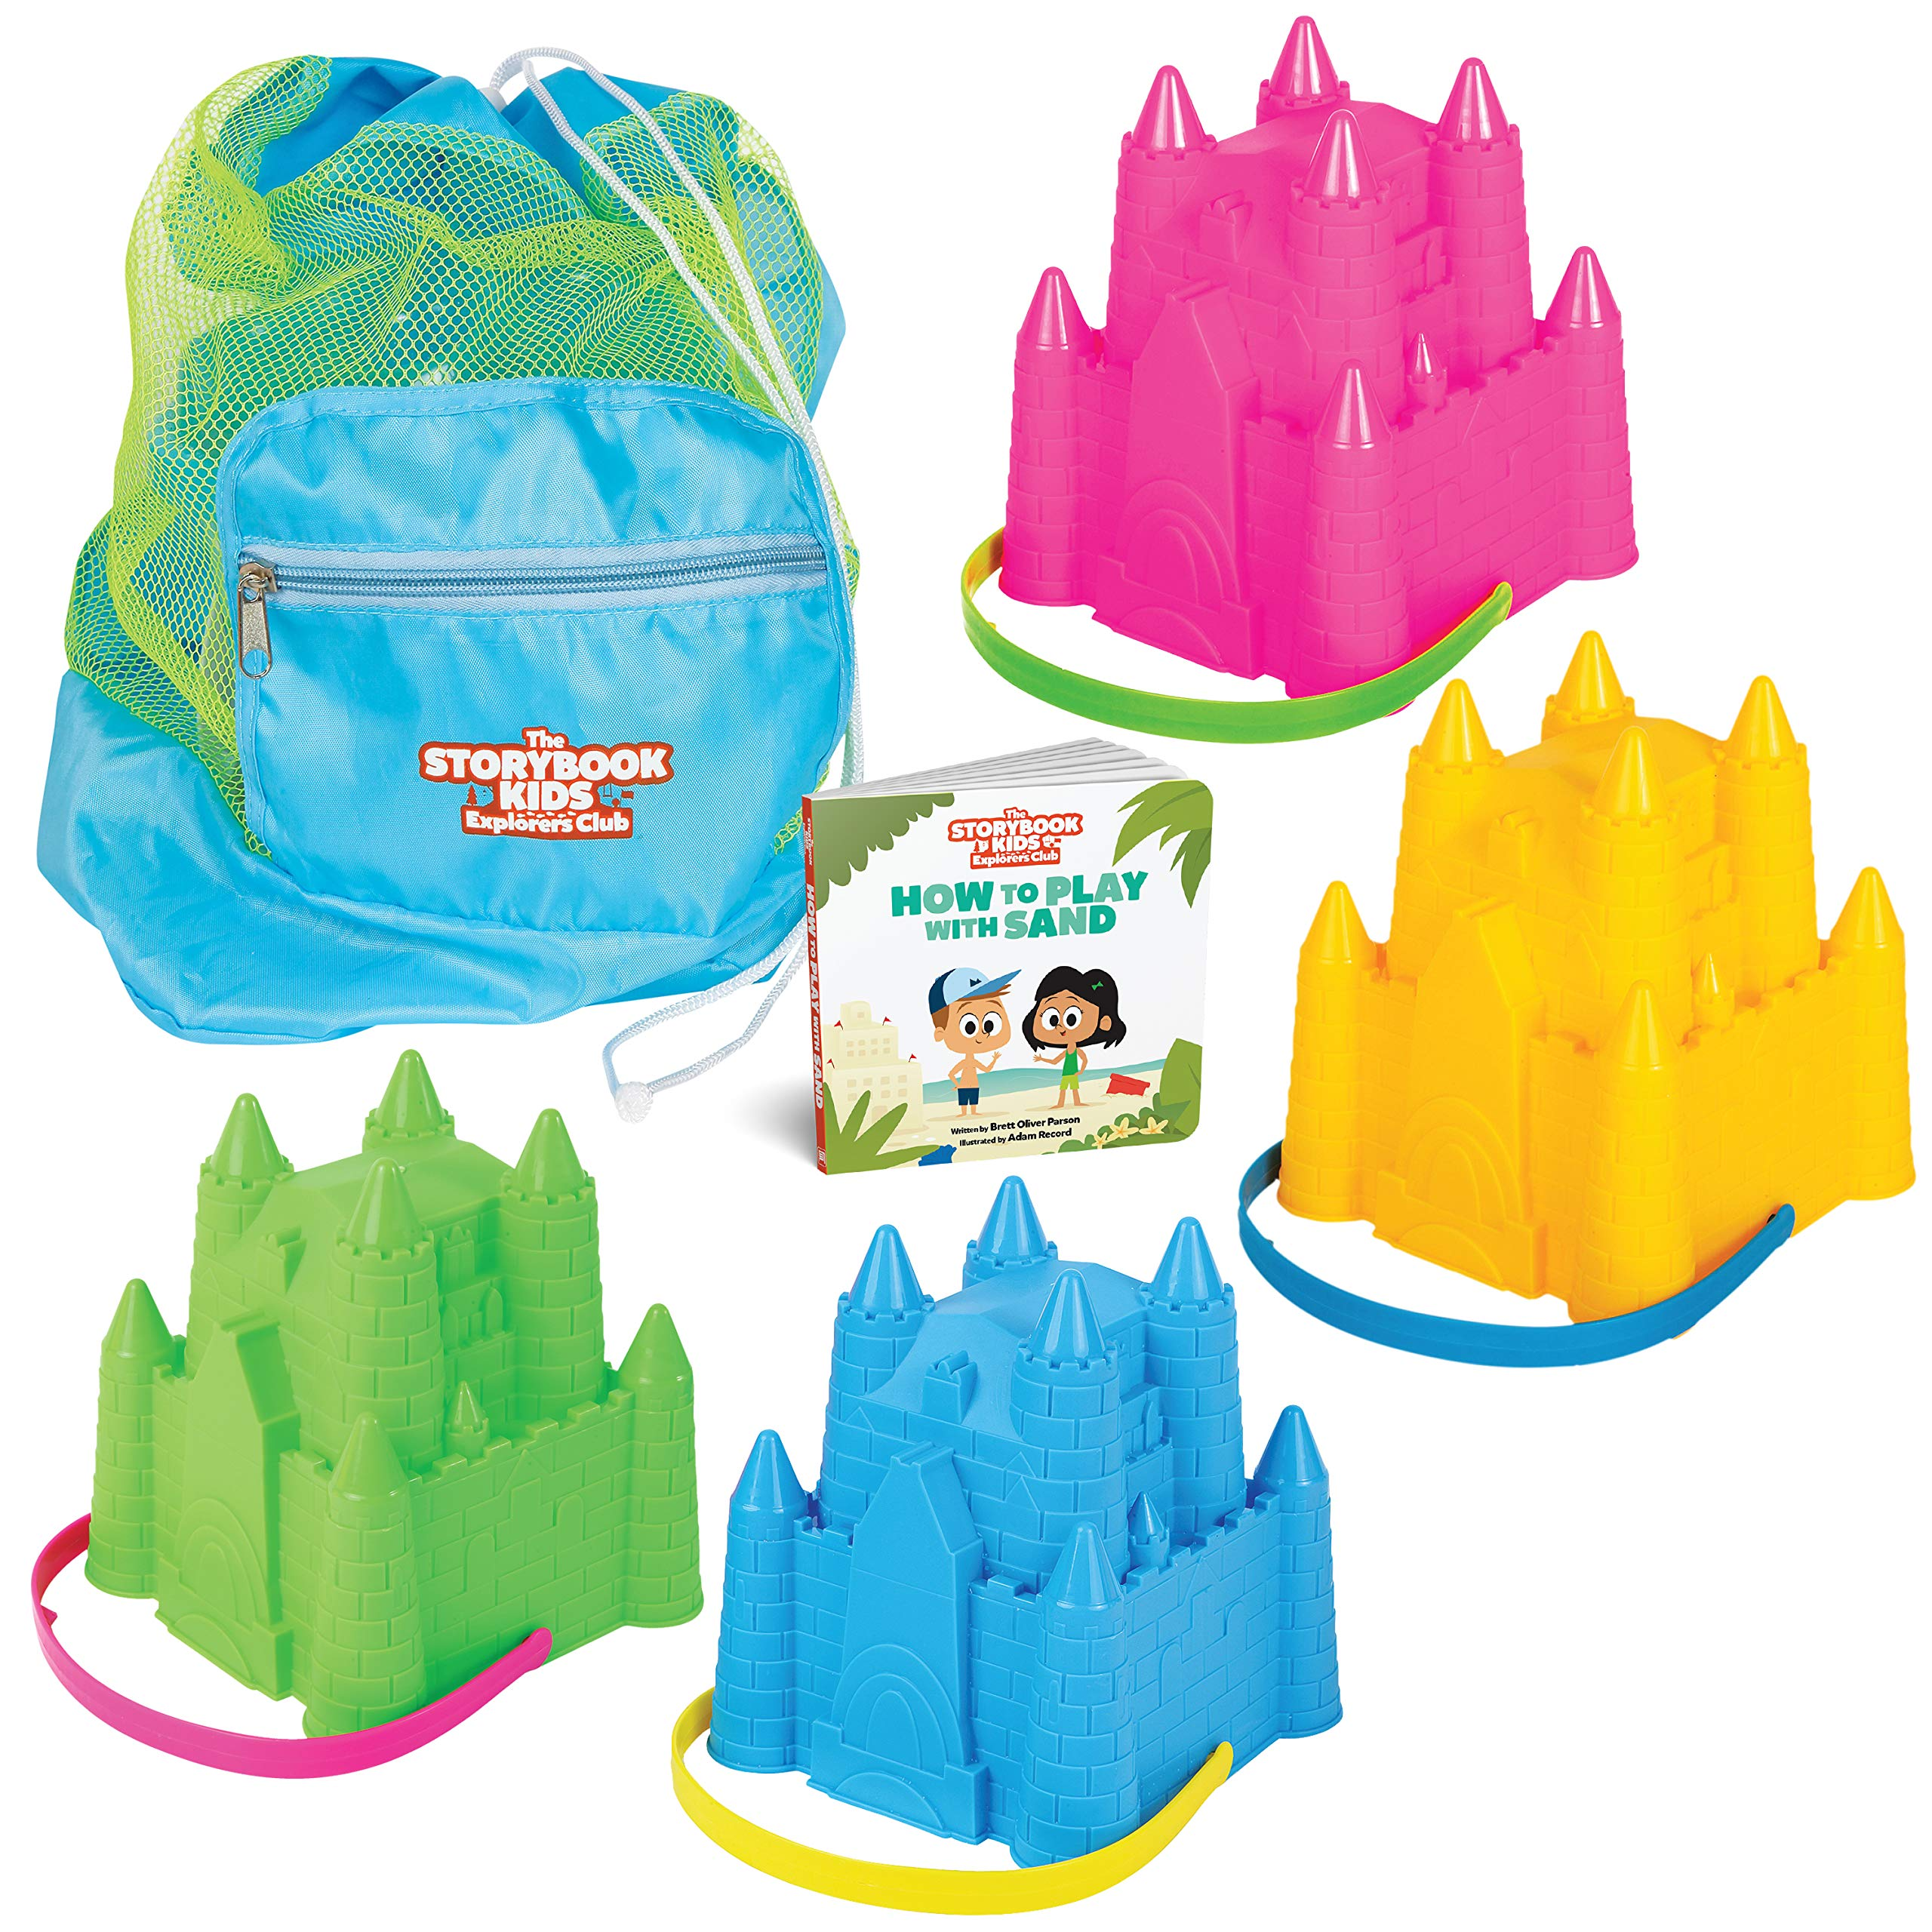 THE STORYBOOK KIDS EXPLORERS CLUB Beach Toys Set - Sandbox Sandcastle Toy 4-Pack for Toddlers with Fun Book - Baby & Toddler Sand Box Toys in Carry Bag - Castle Building Molds Kit for Boys & Girls